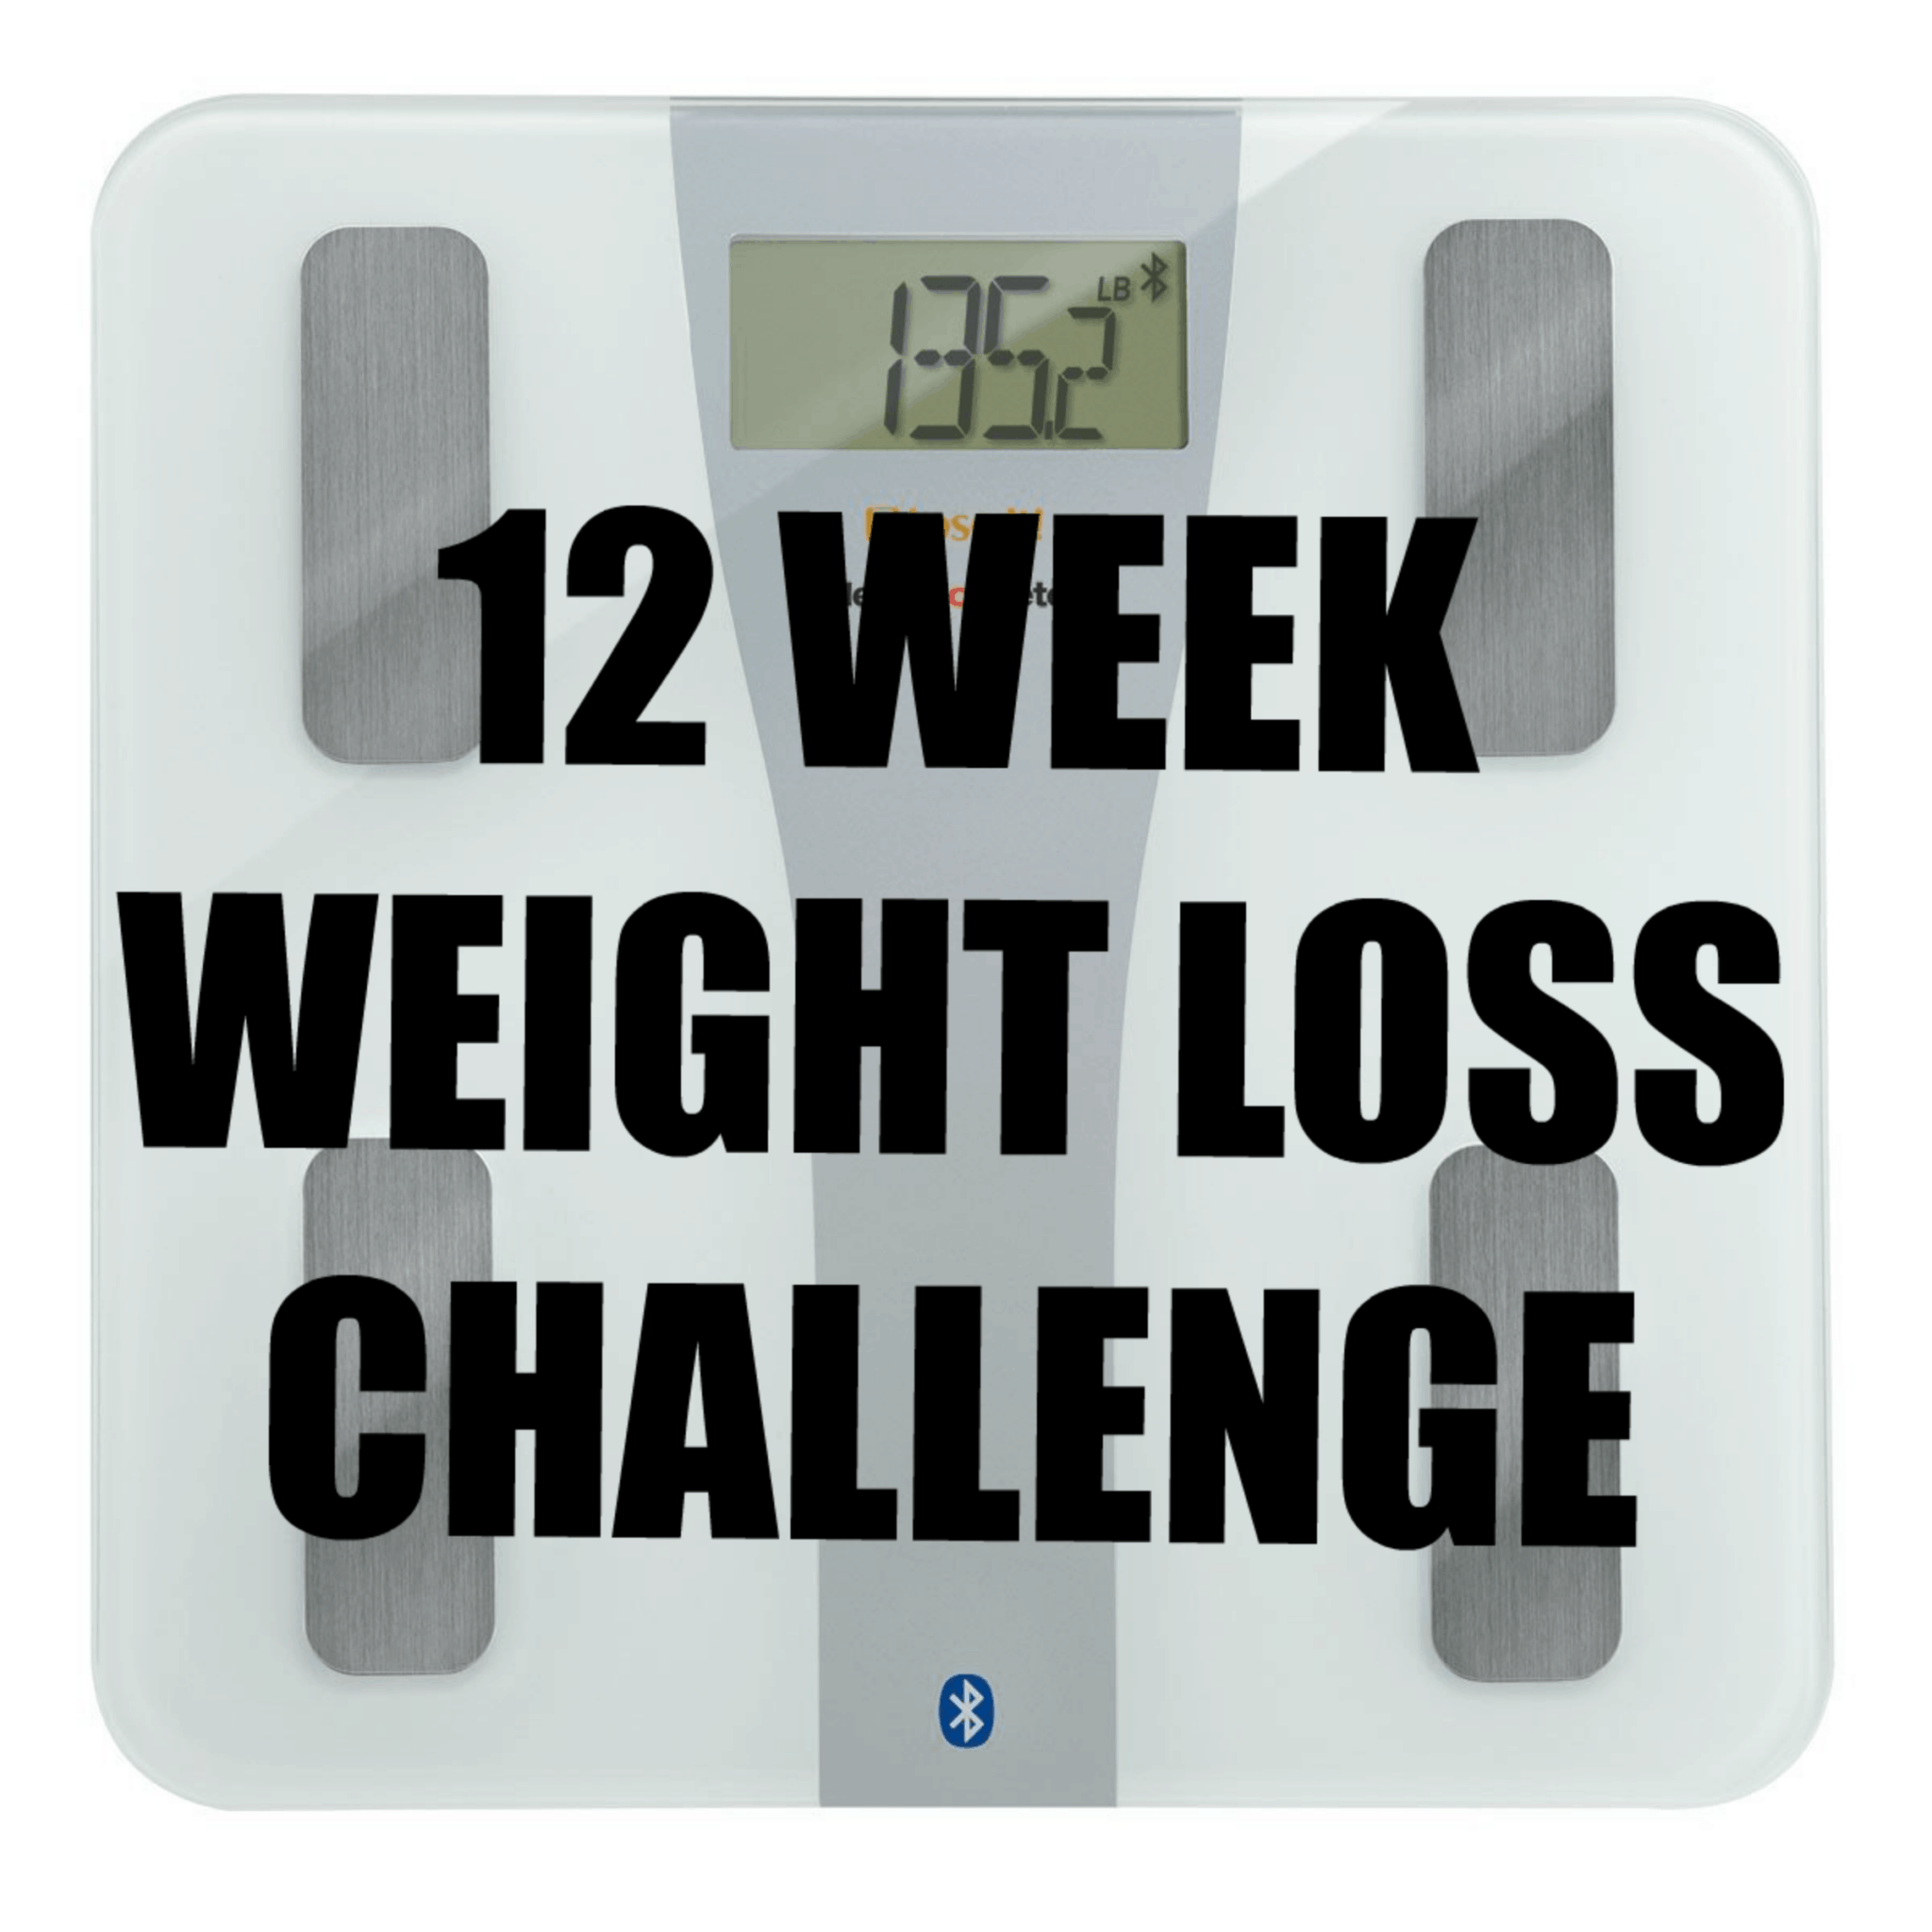 12 weeks weight loss challenge